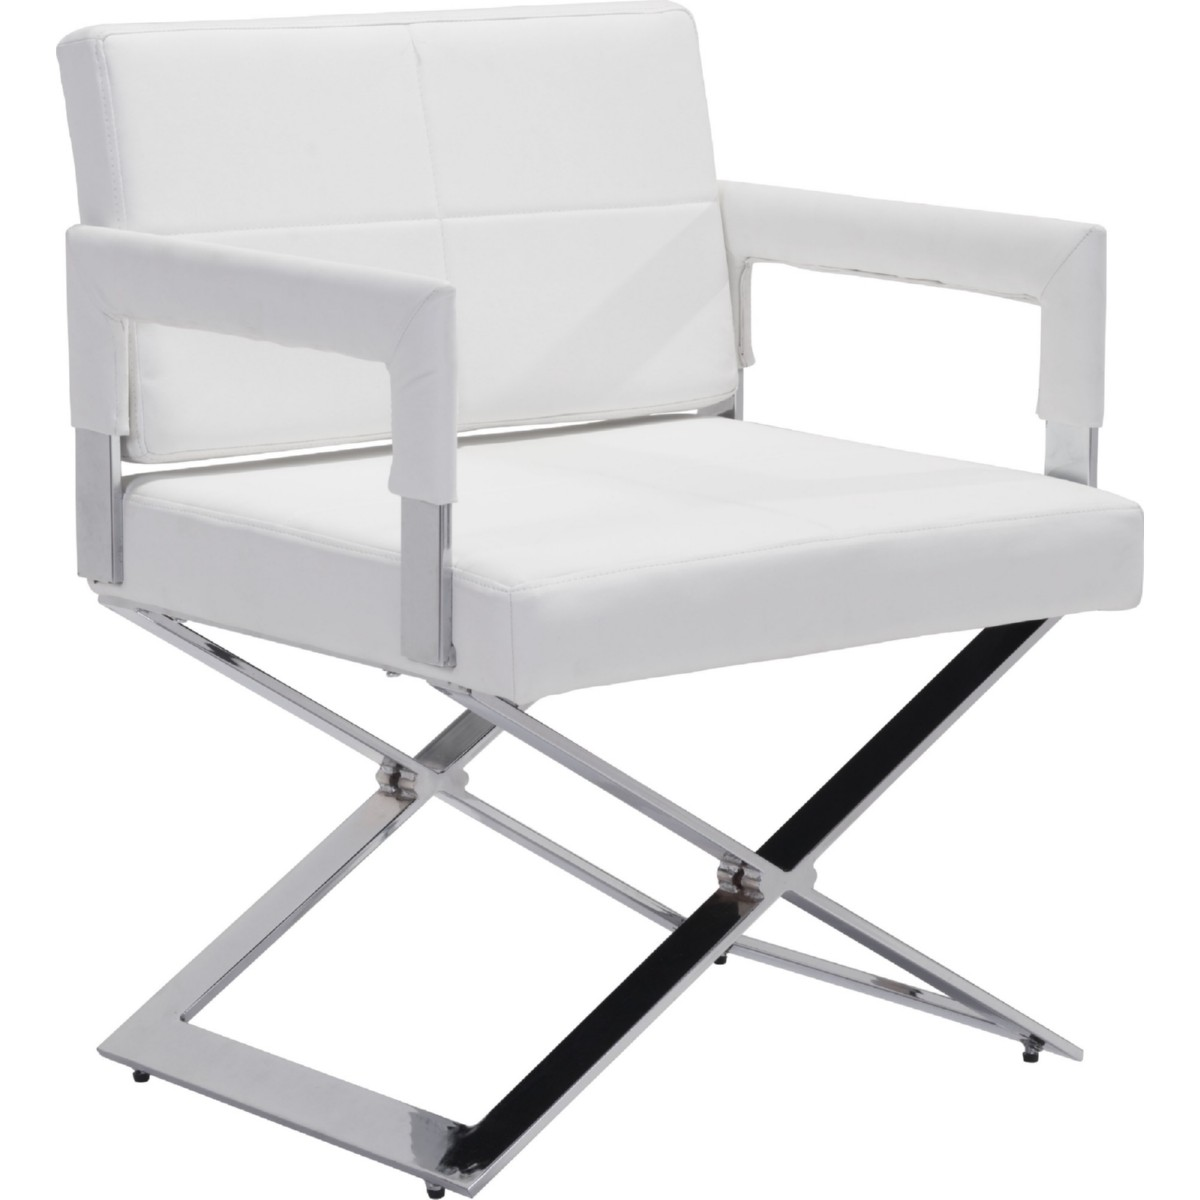 Zuo modern furniture 100383 yes dining chair in white for White chrome dining chairs